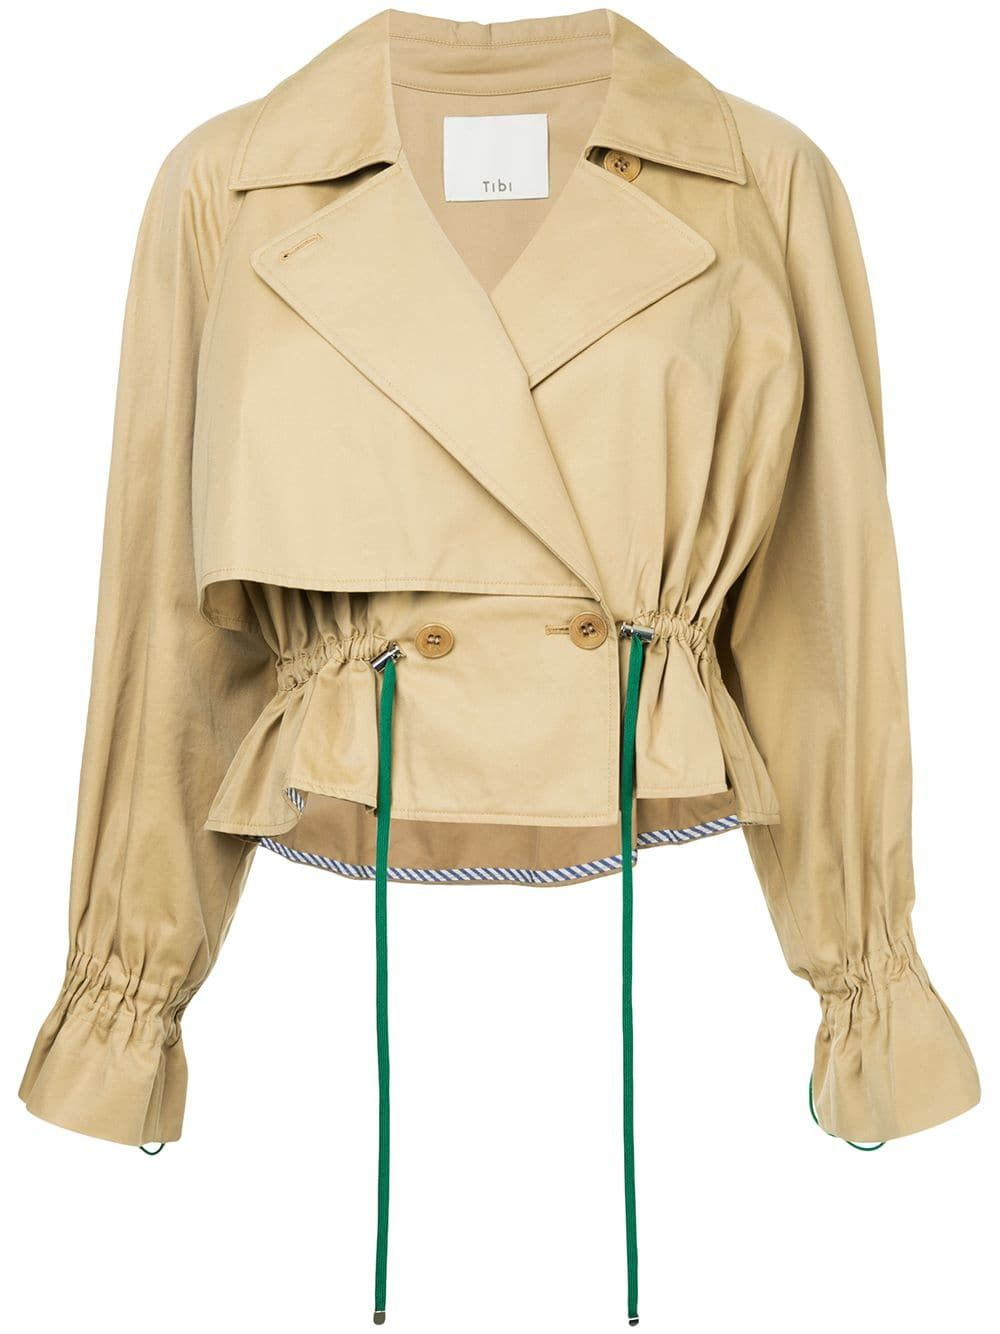 Cropped Trench Coat Tibi farfetch.com $686.79 SHOP NOW Not all trench coats are created equal—take this style with green drawstrings and cropped silhouette as an example. So good.